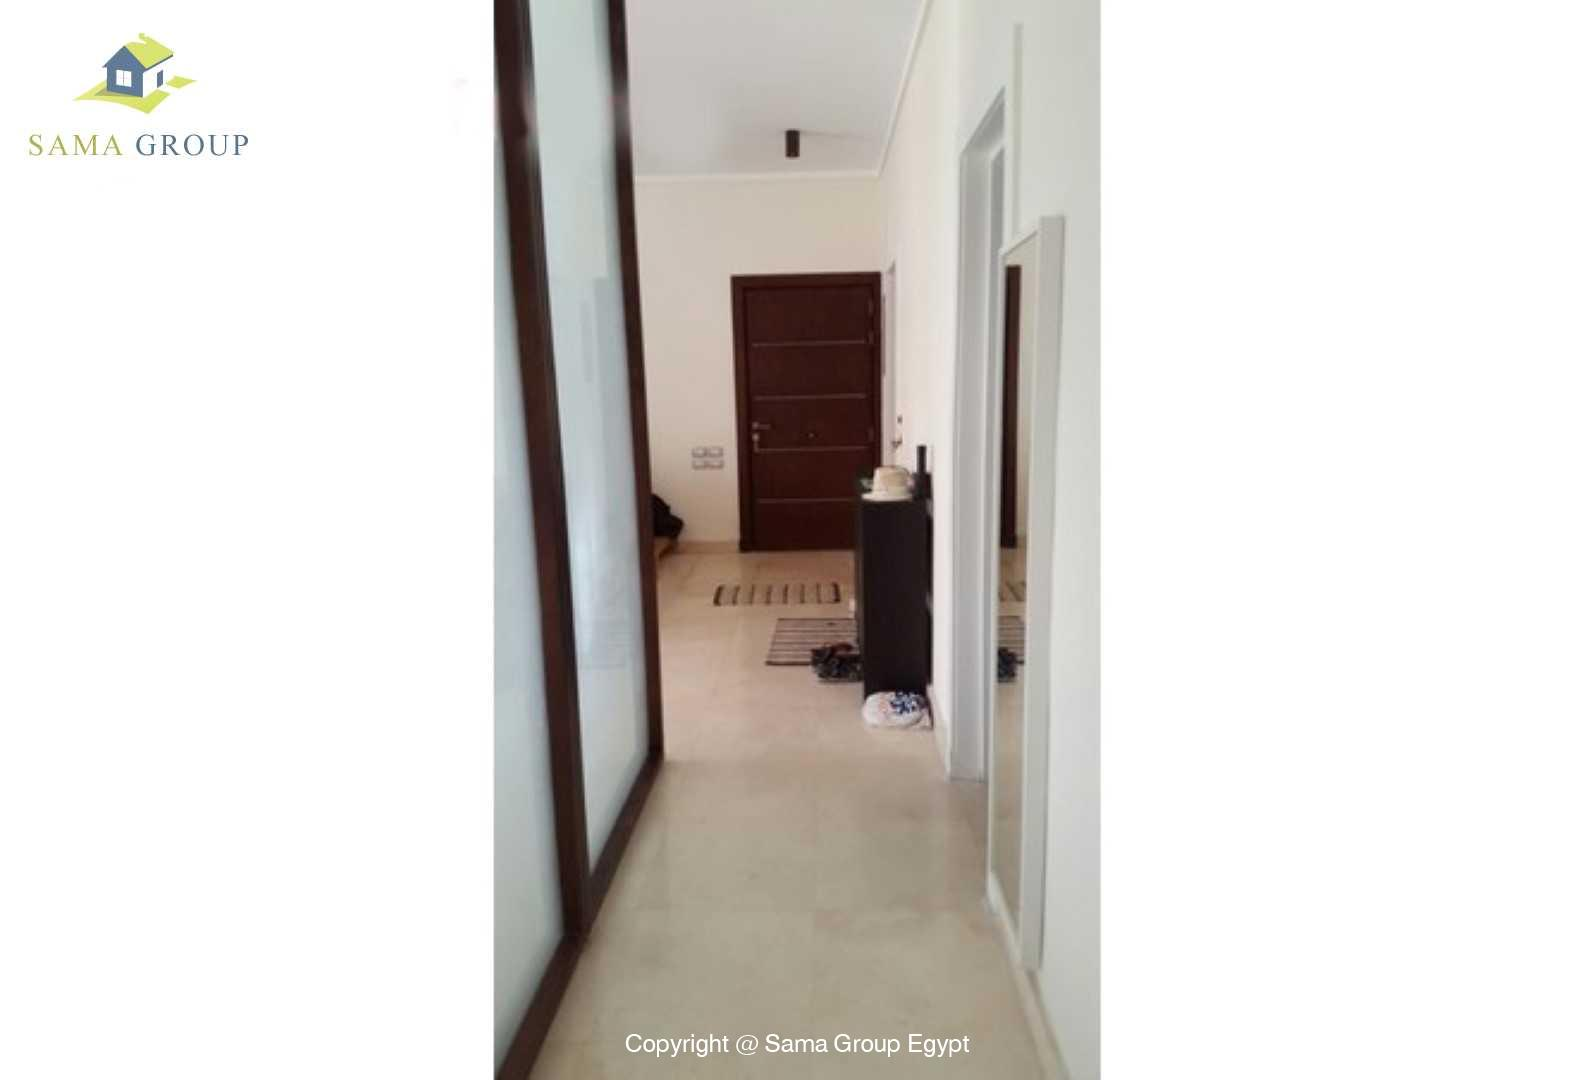 Penthouse For Rent In New Cairo The Village,Modern Furnished,Penthouse NO #3